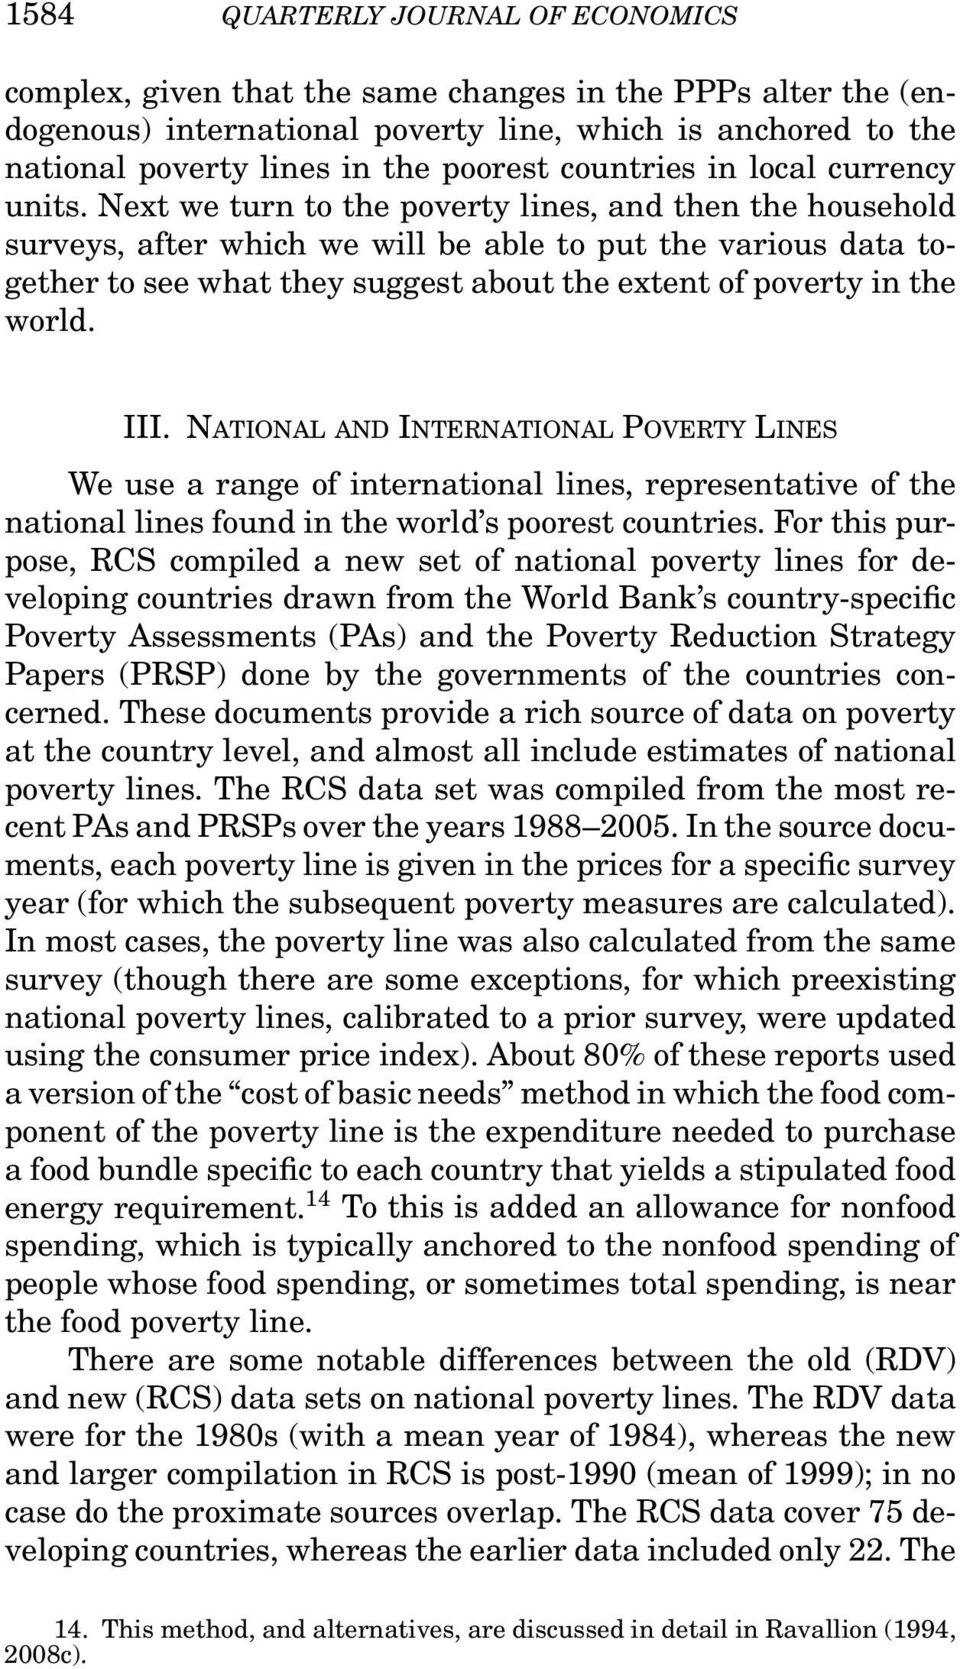 Next we turn to the poverty lines, and then the household surveys, after which we will be able to put the various data together to see what they suggest about the extent of poverty in the world. III.